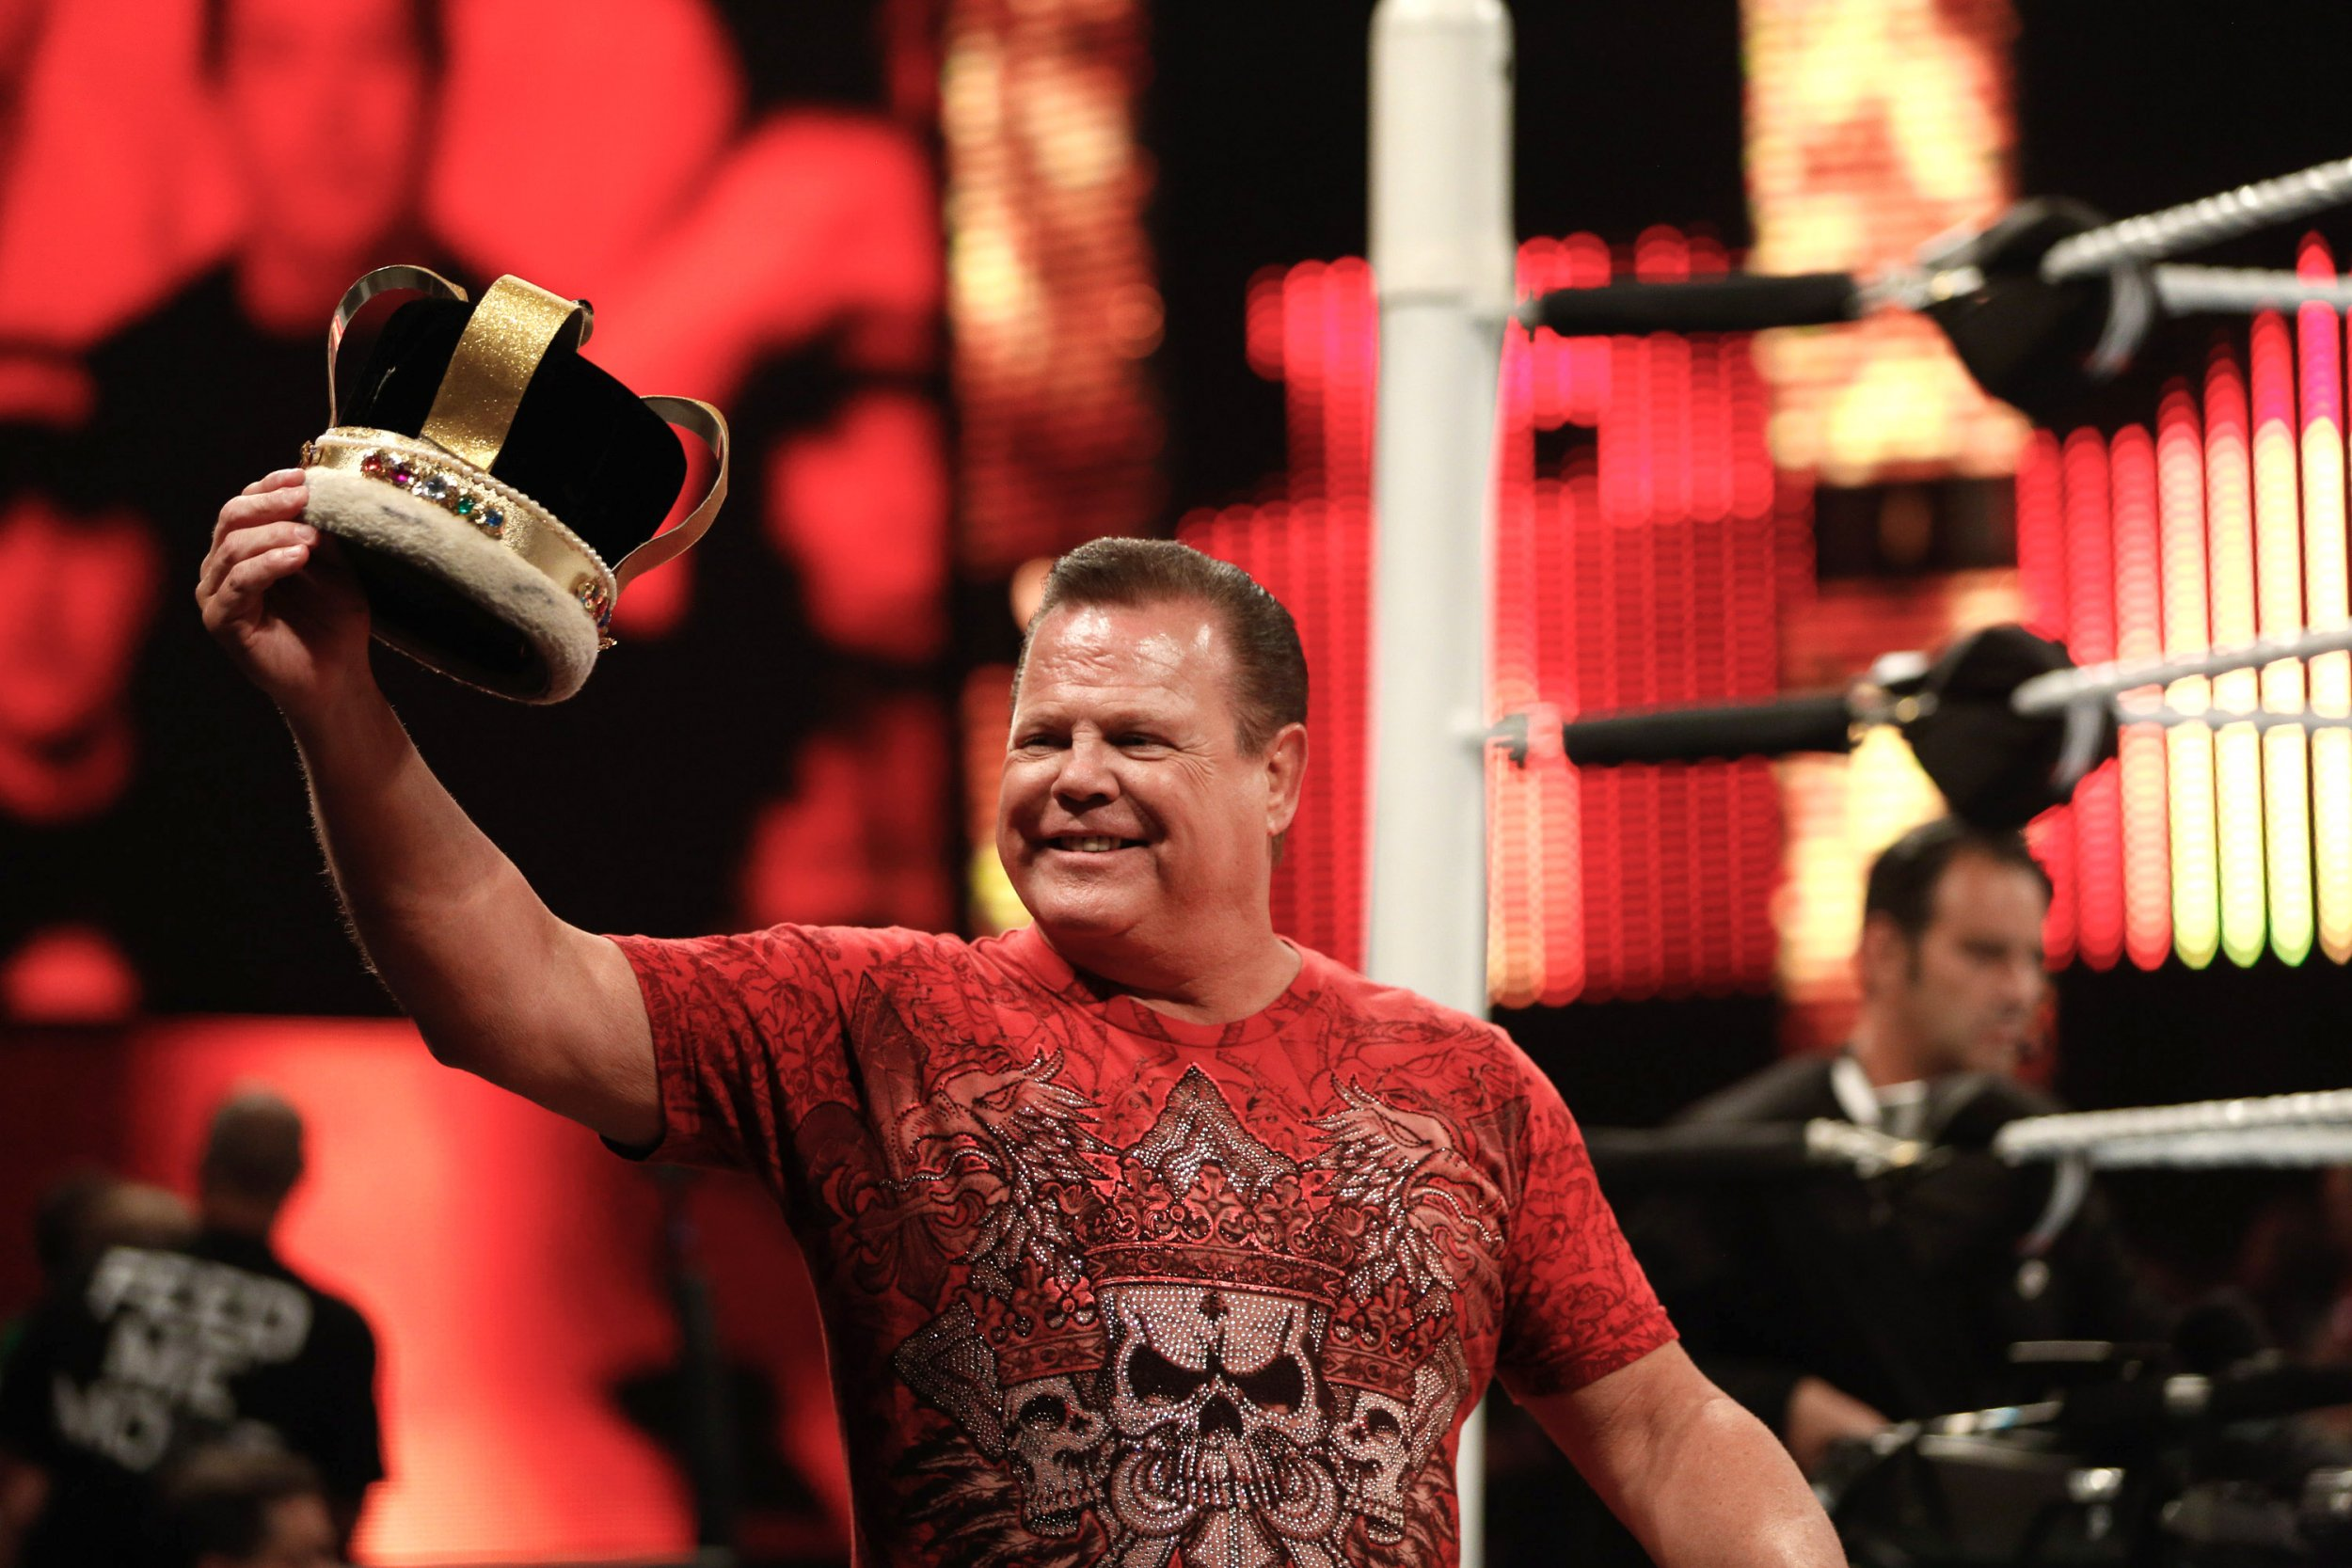 Jerry Lawler from WWE